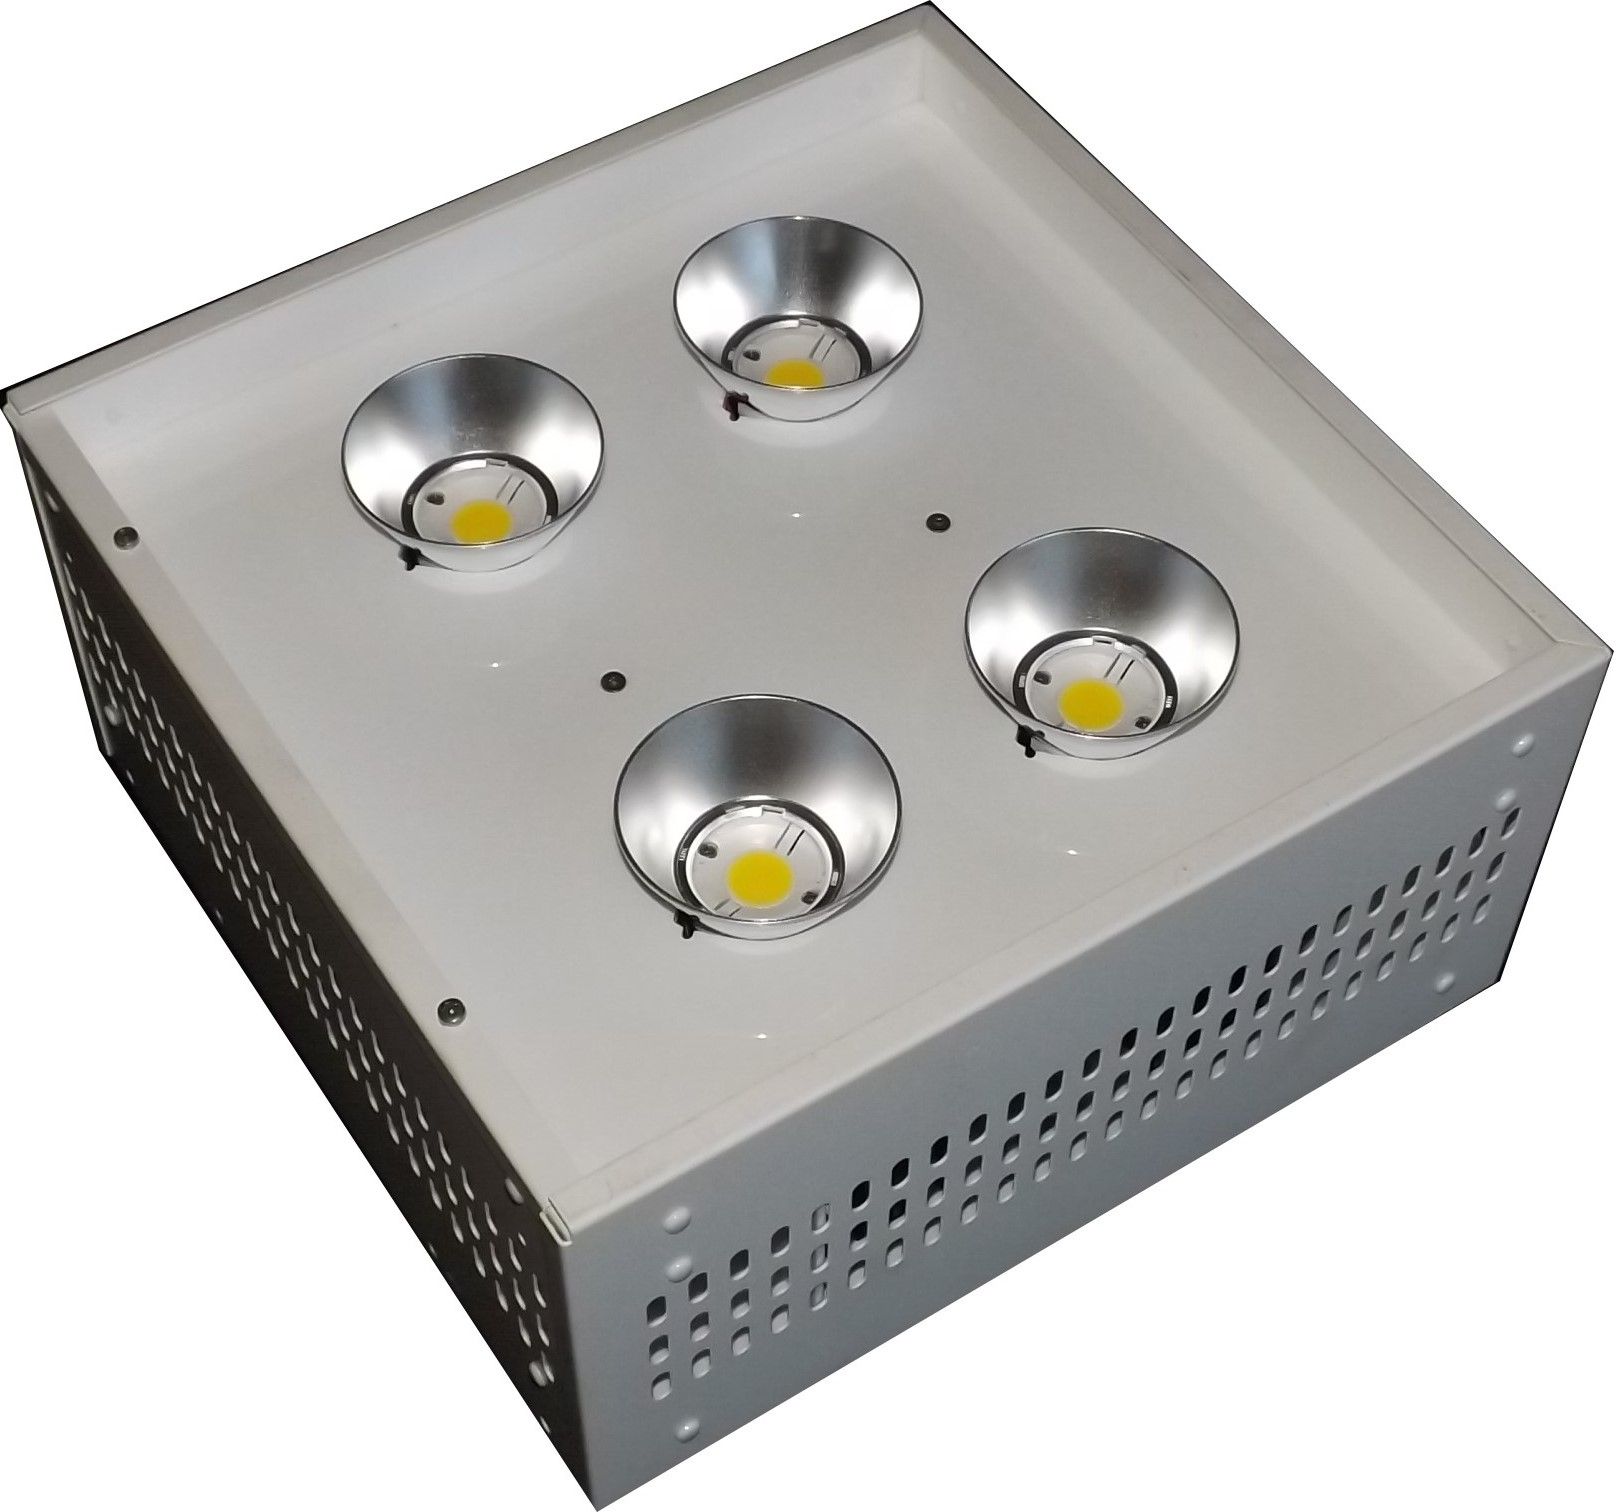 BRIGHTON LED High Bay Light